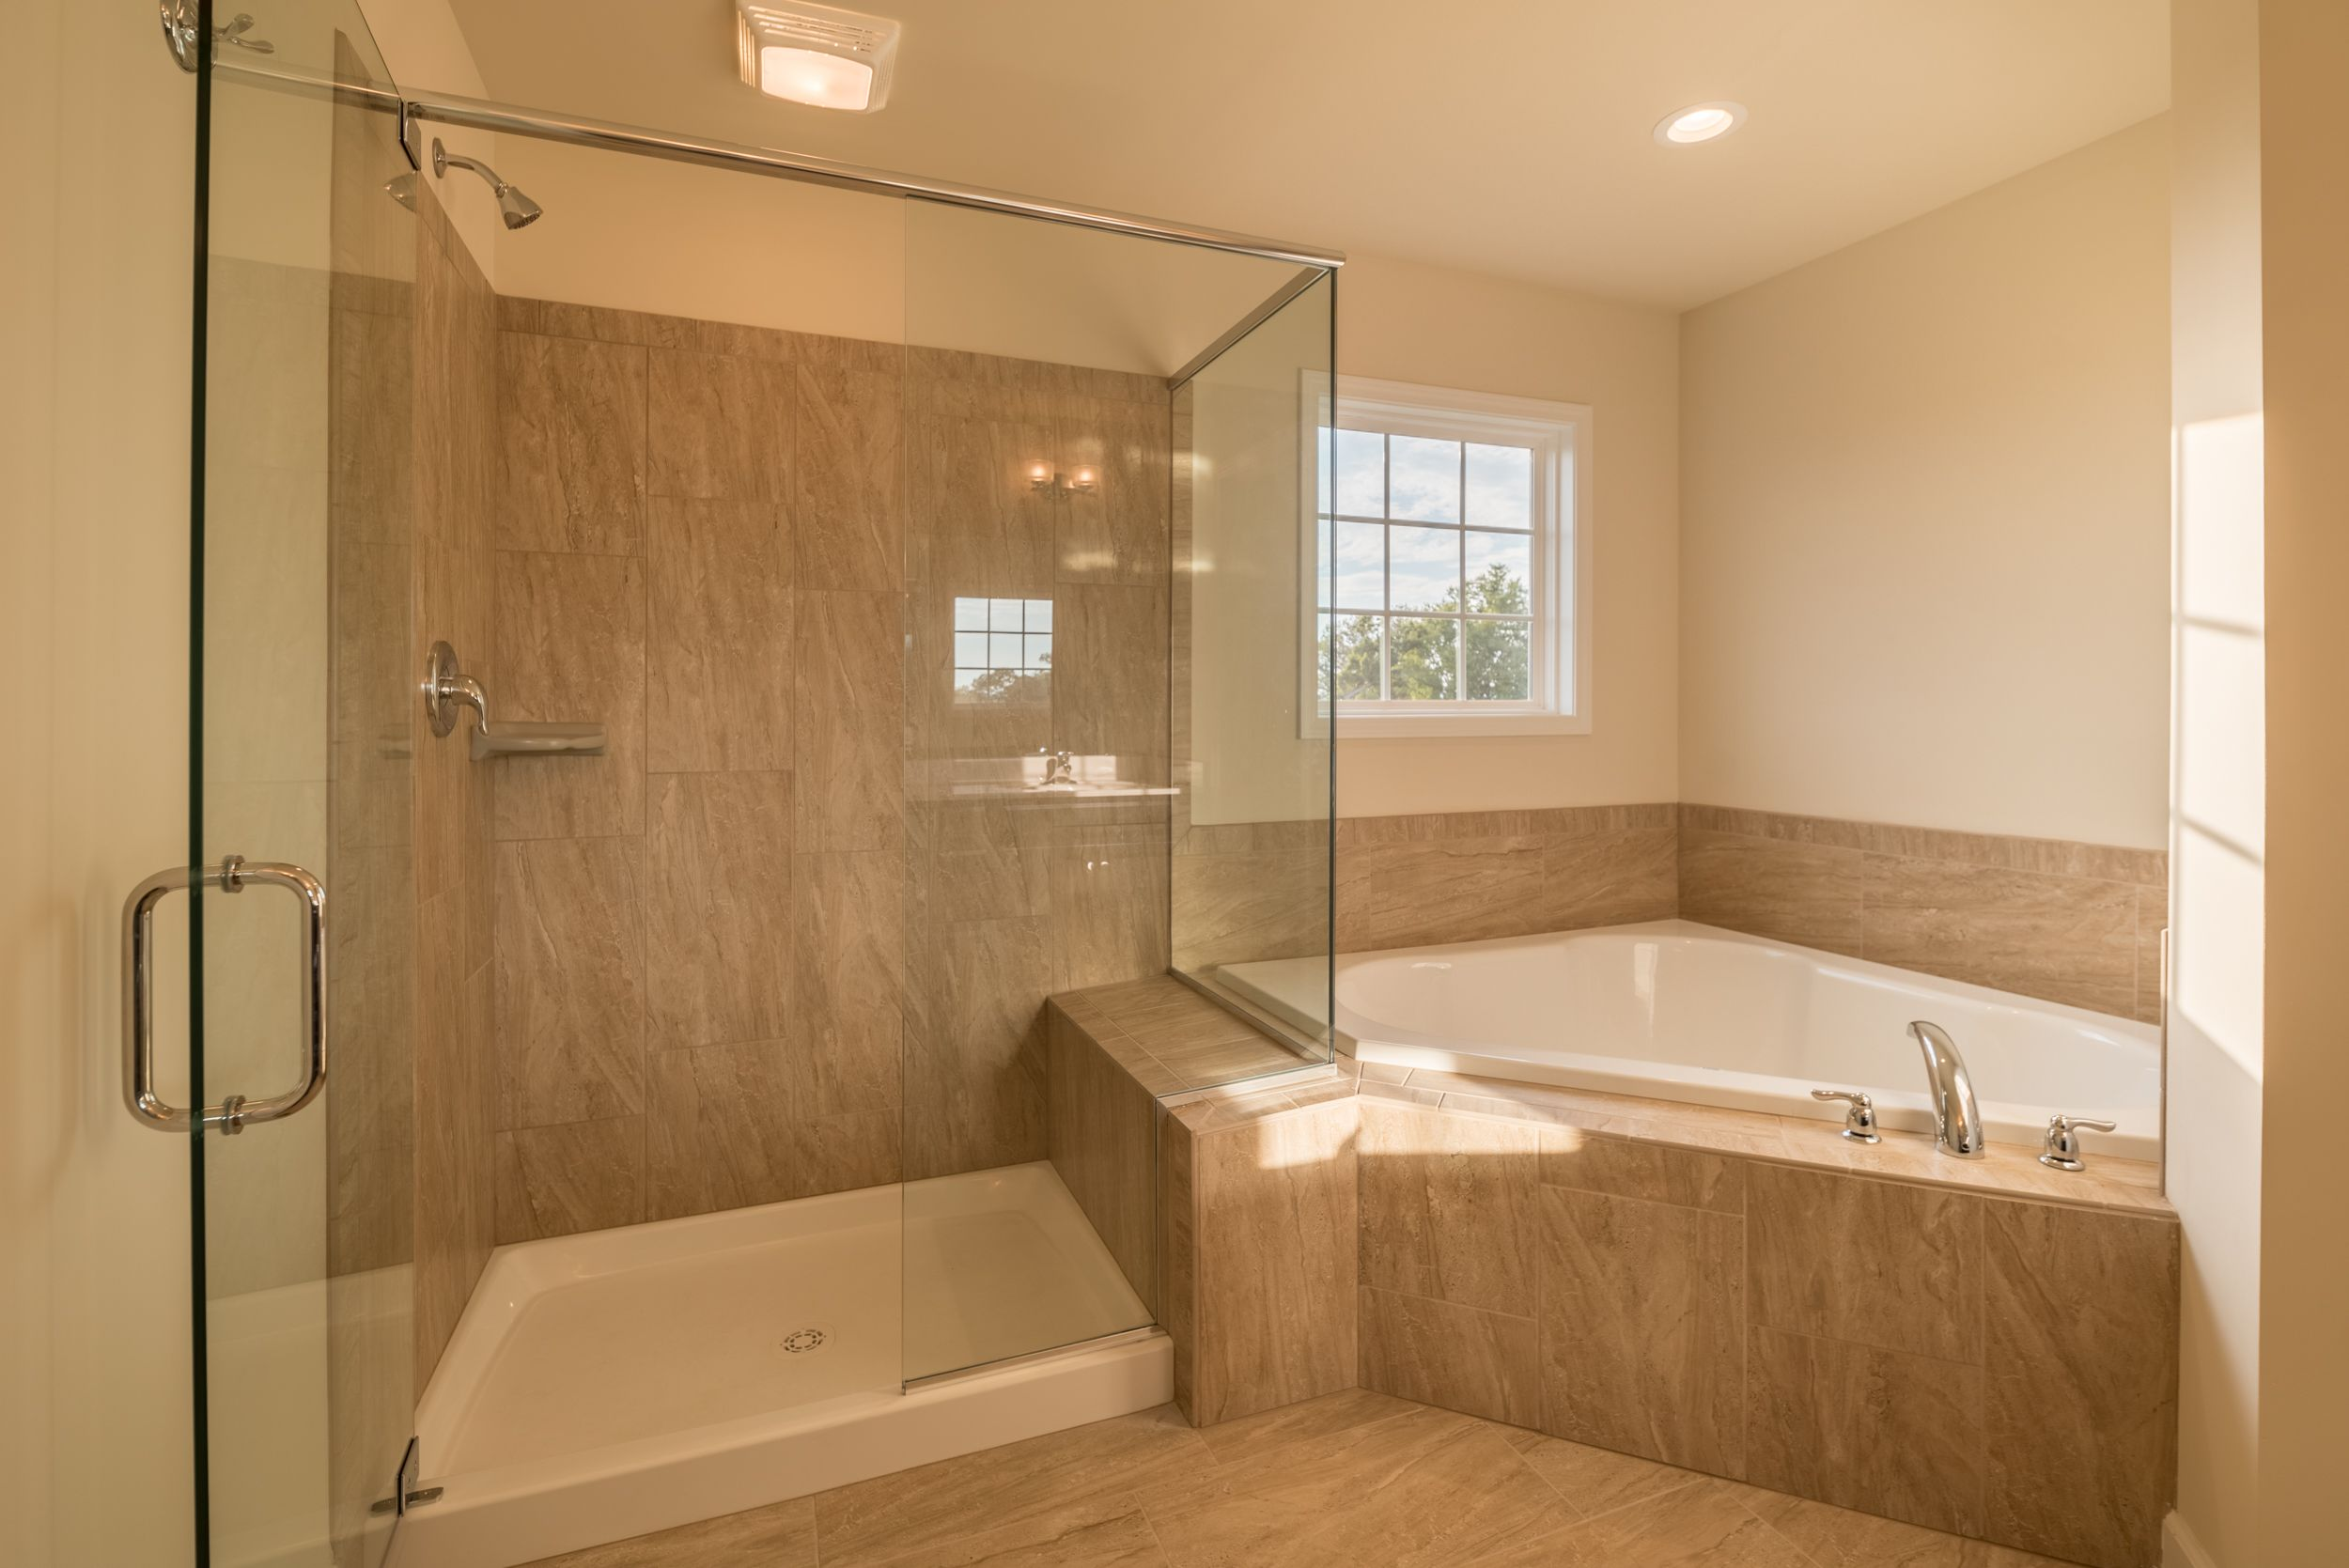 Bathroom featured in The Burwell By Stateson Homes in Blacksburg, VA